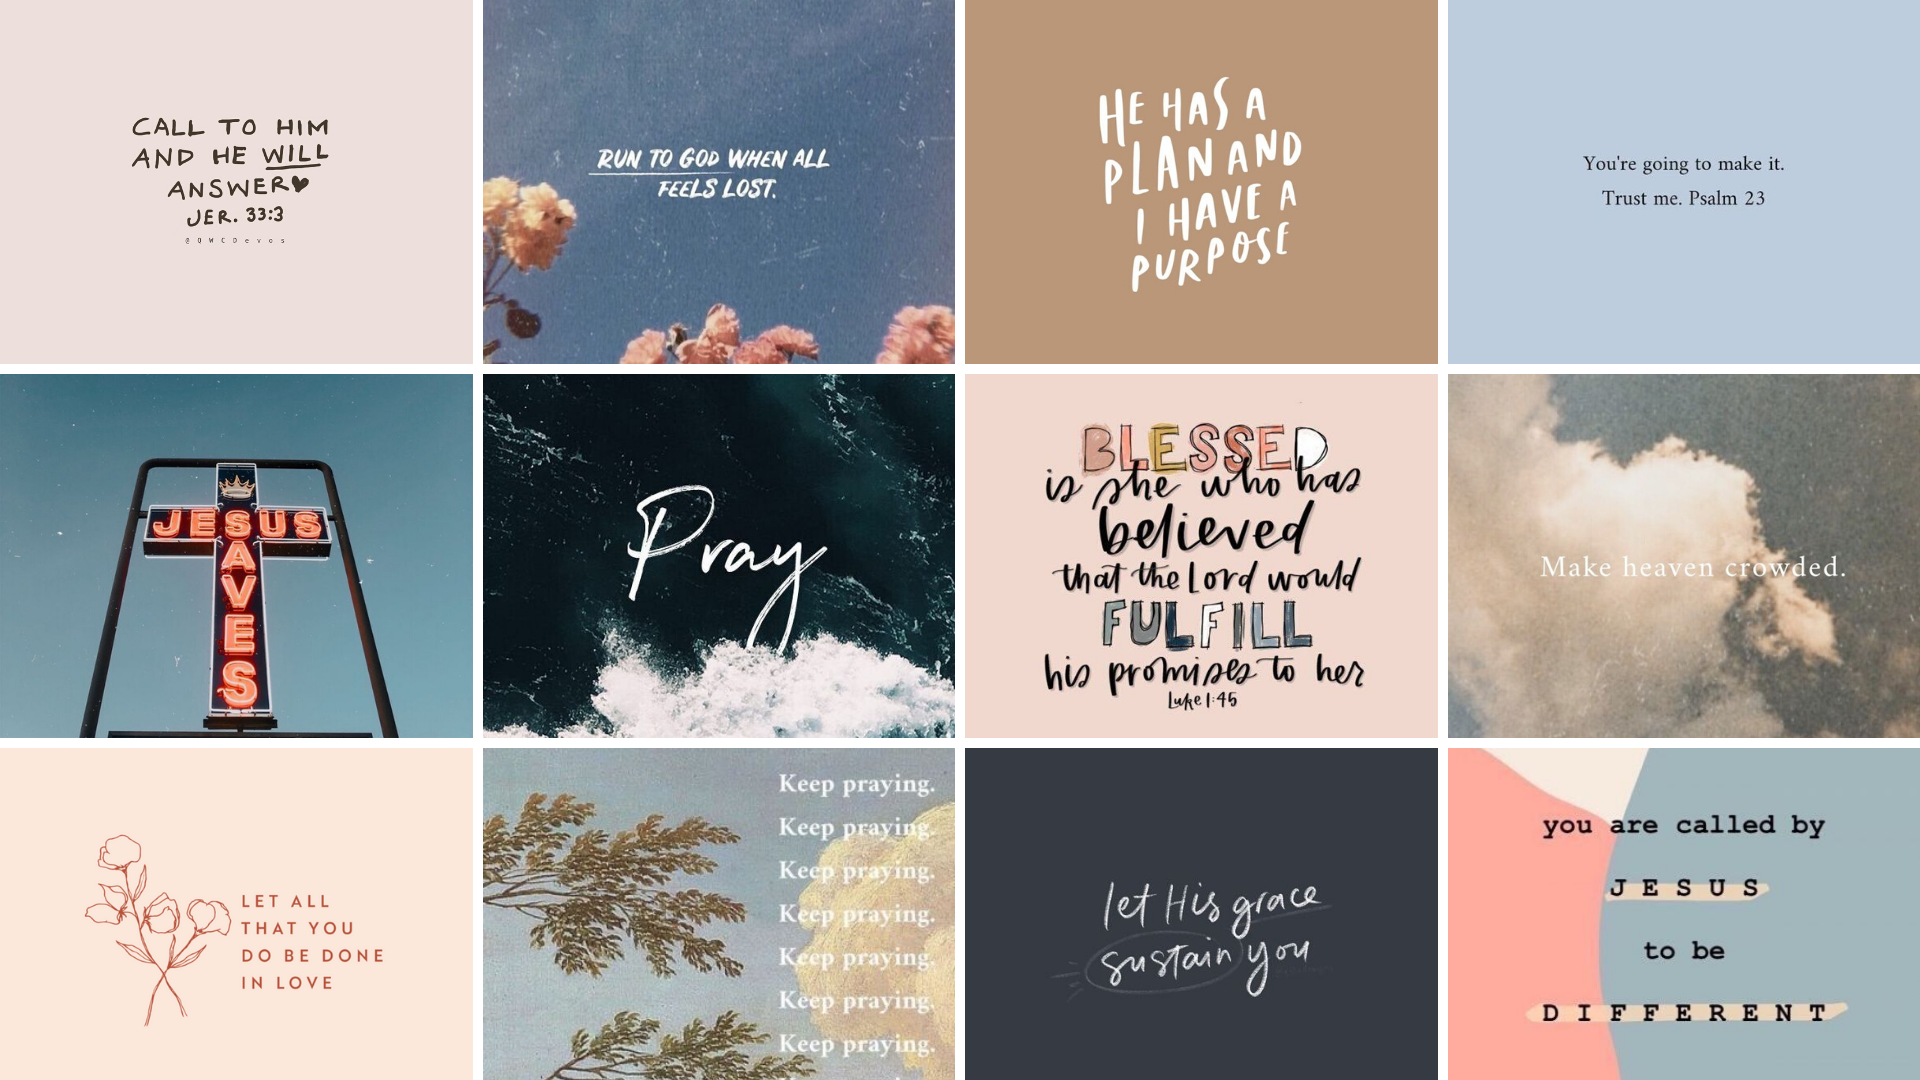 Christian Desktop Wallpaper In 2021 Bible Verse Desktop Wallpaper Cute Desktop Wallpaper Inspirational Desktop Wallpaper